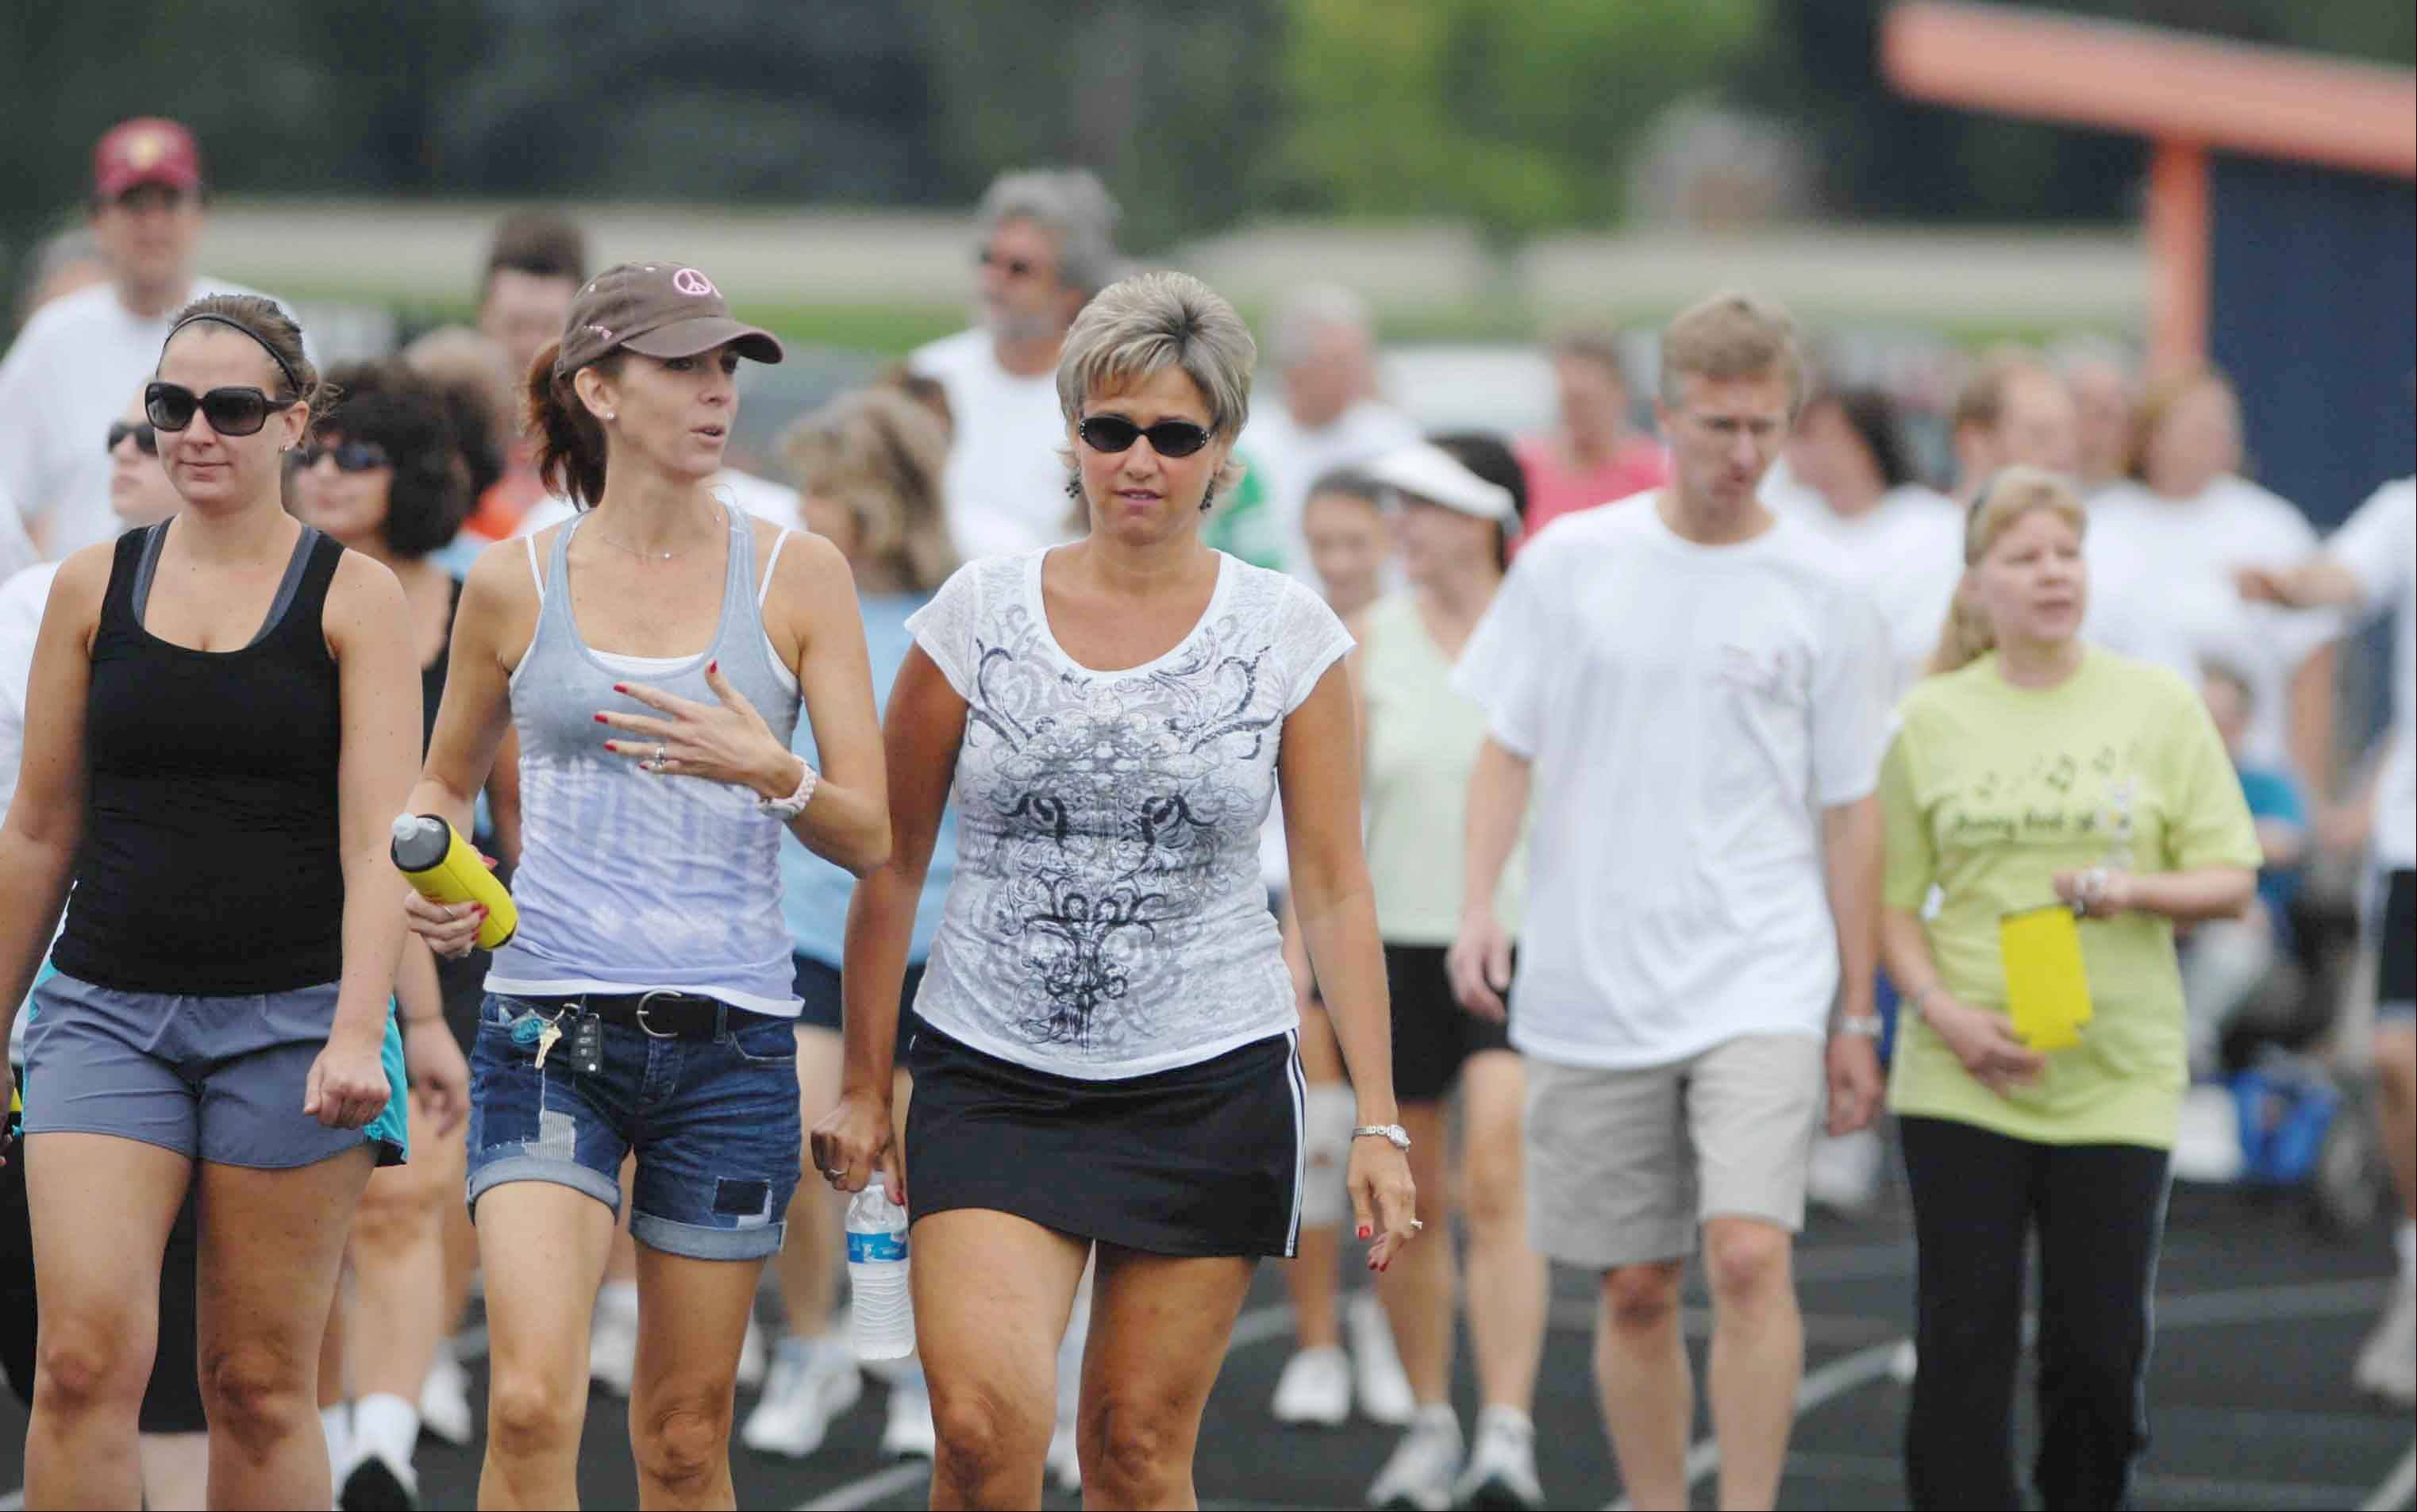 The Kathryn Bender Memorial Foundation will sponsor its annual fundraising 5K run/walk Saturday, Aug. 24, at Naperville North High School, 899 N. Mill St.